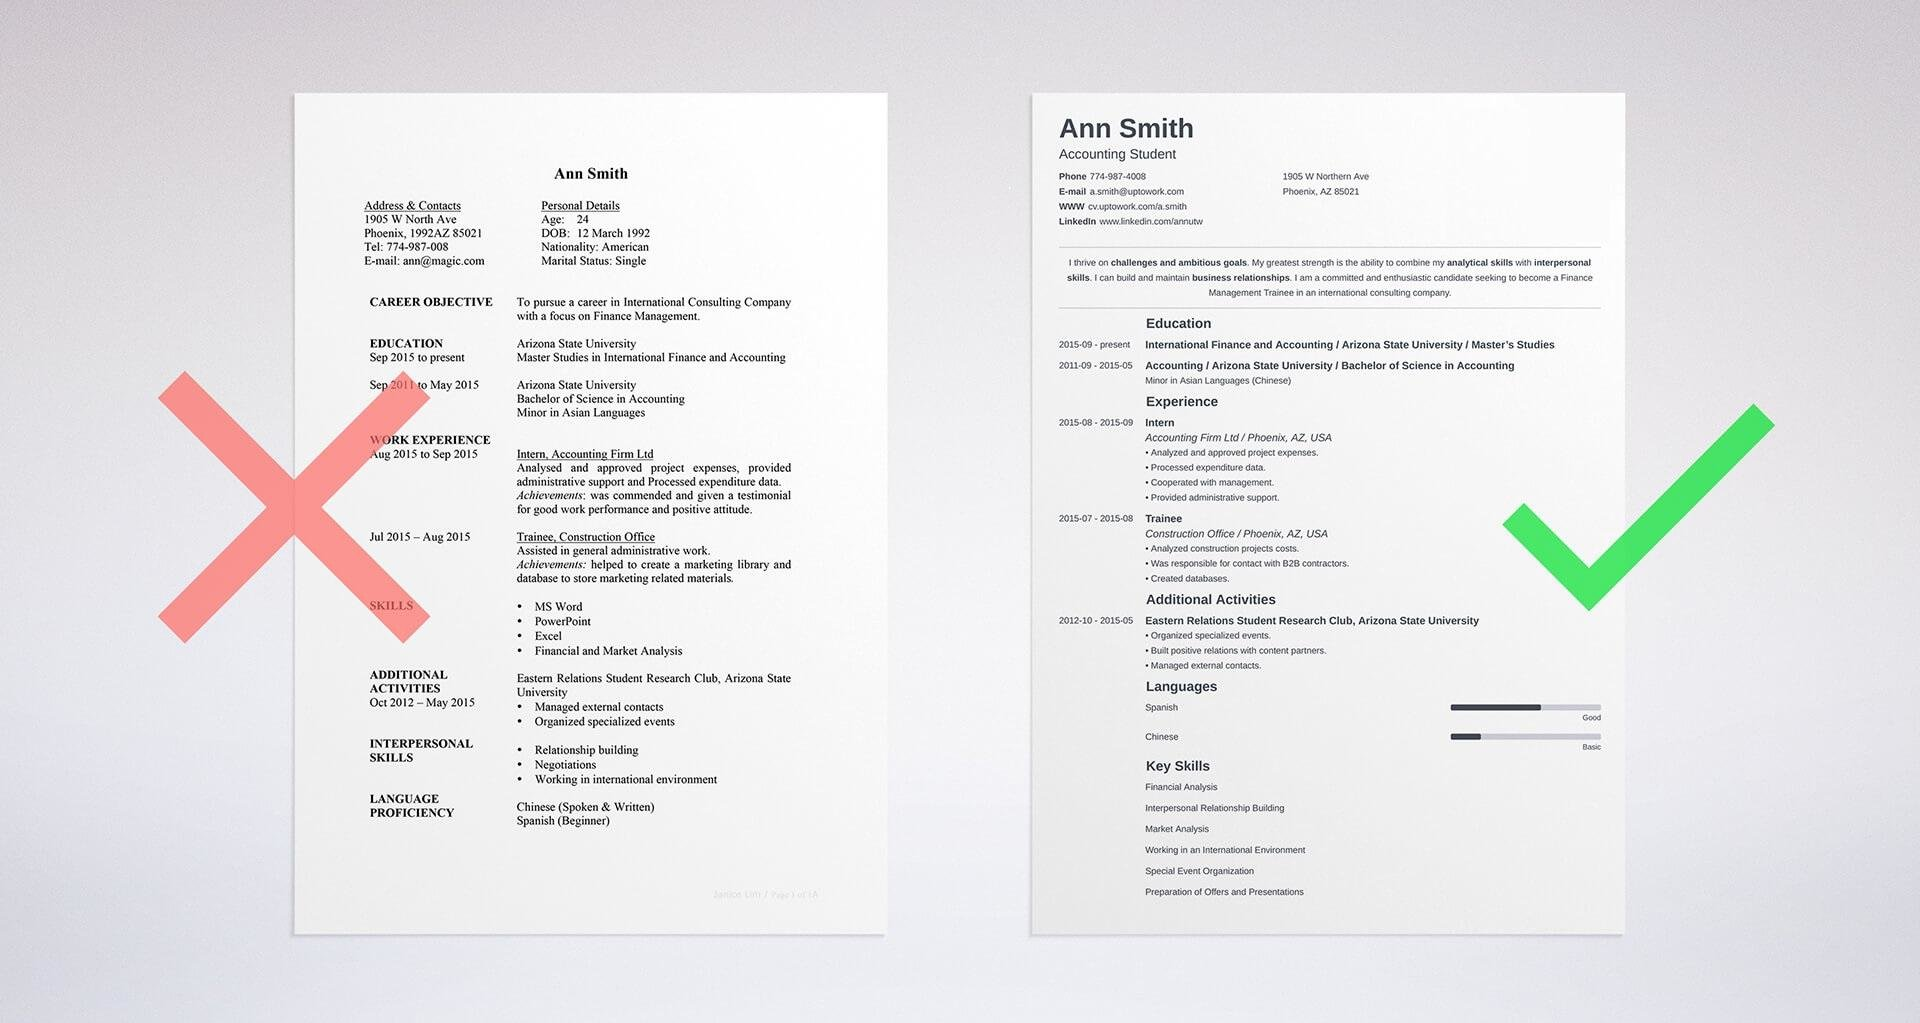 Delightful How To Make A Resume For A Job: Writing Guide [30+ Examples U0026 Tips]